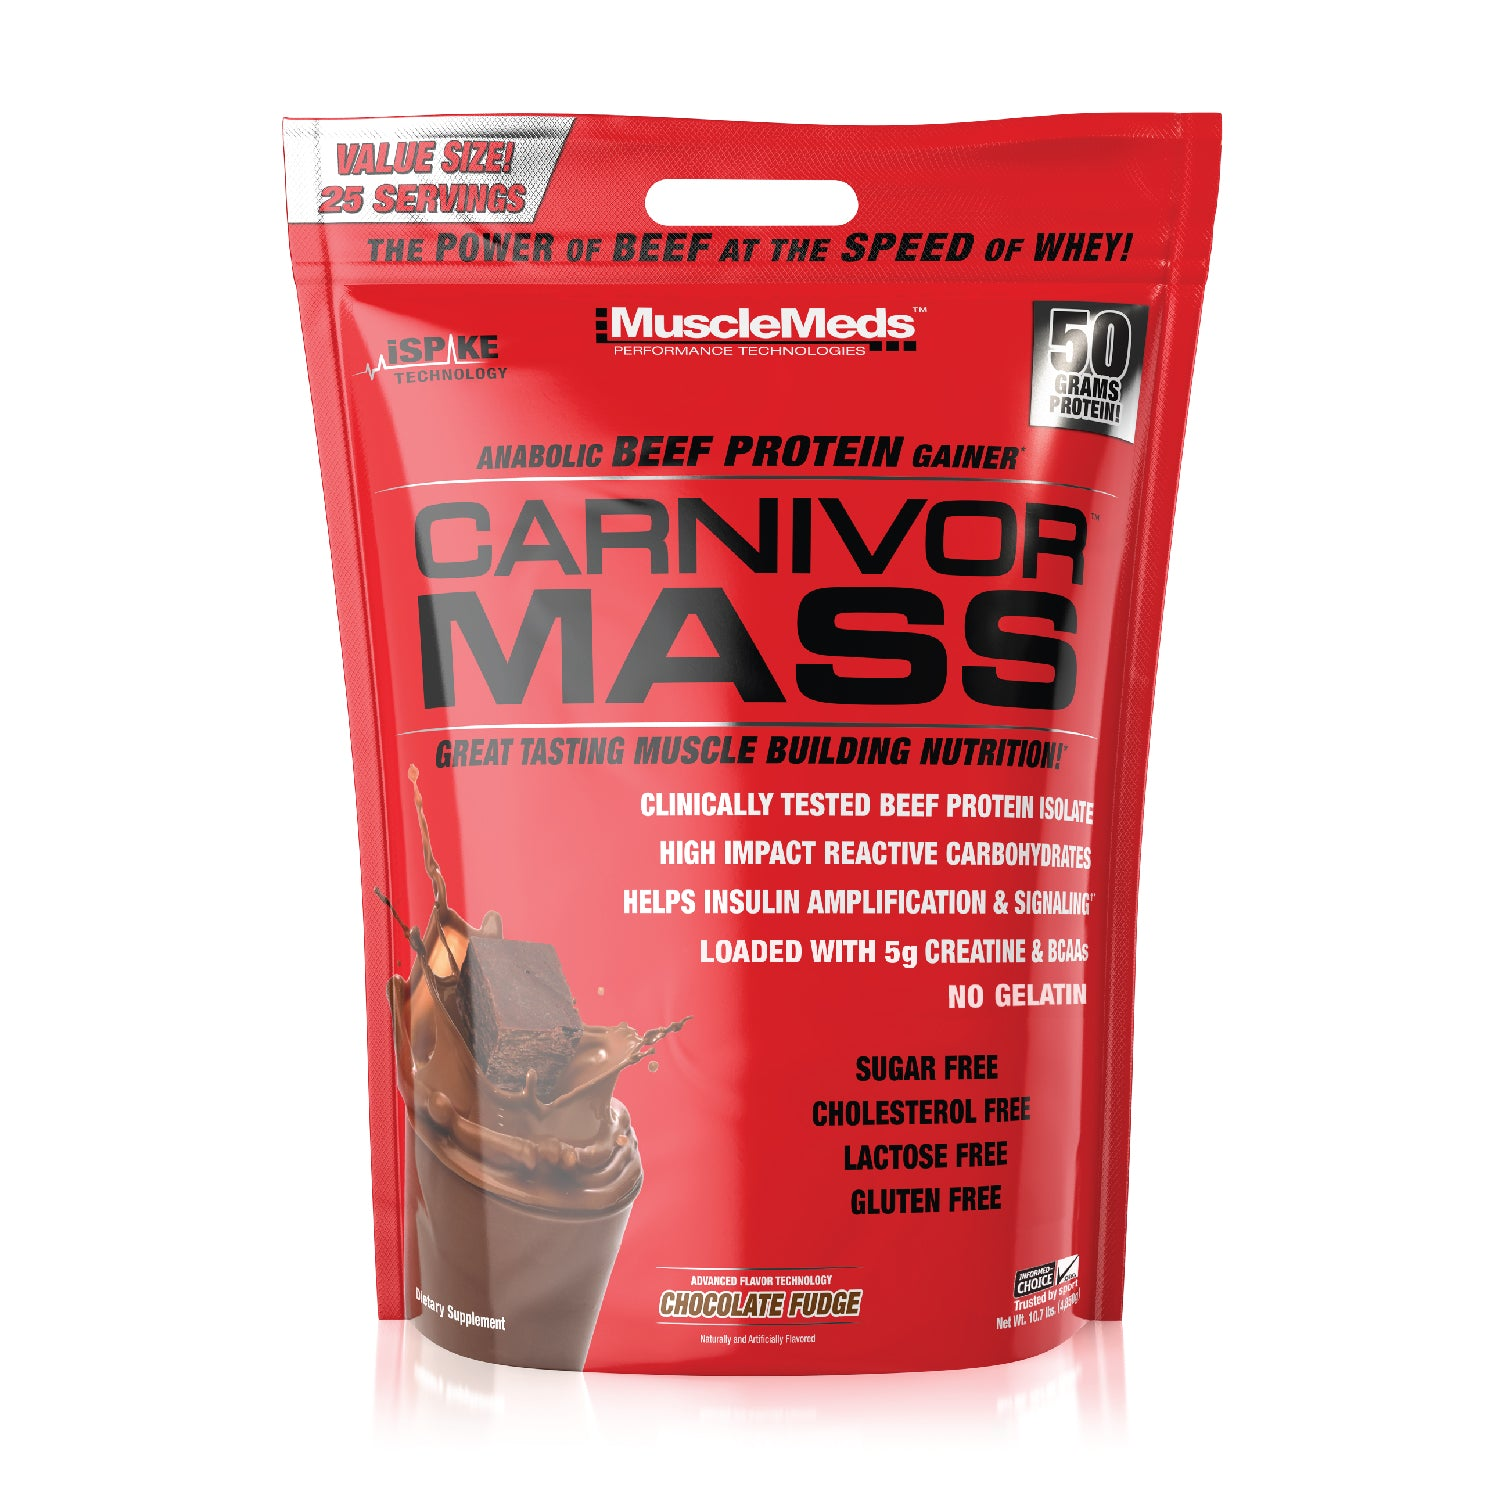 CARNIVOR MASS 10LB BAG CHOCOLATE FUDGE